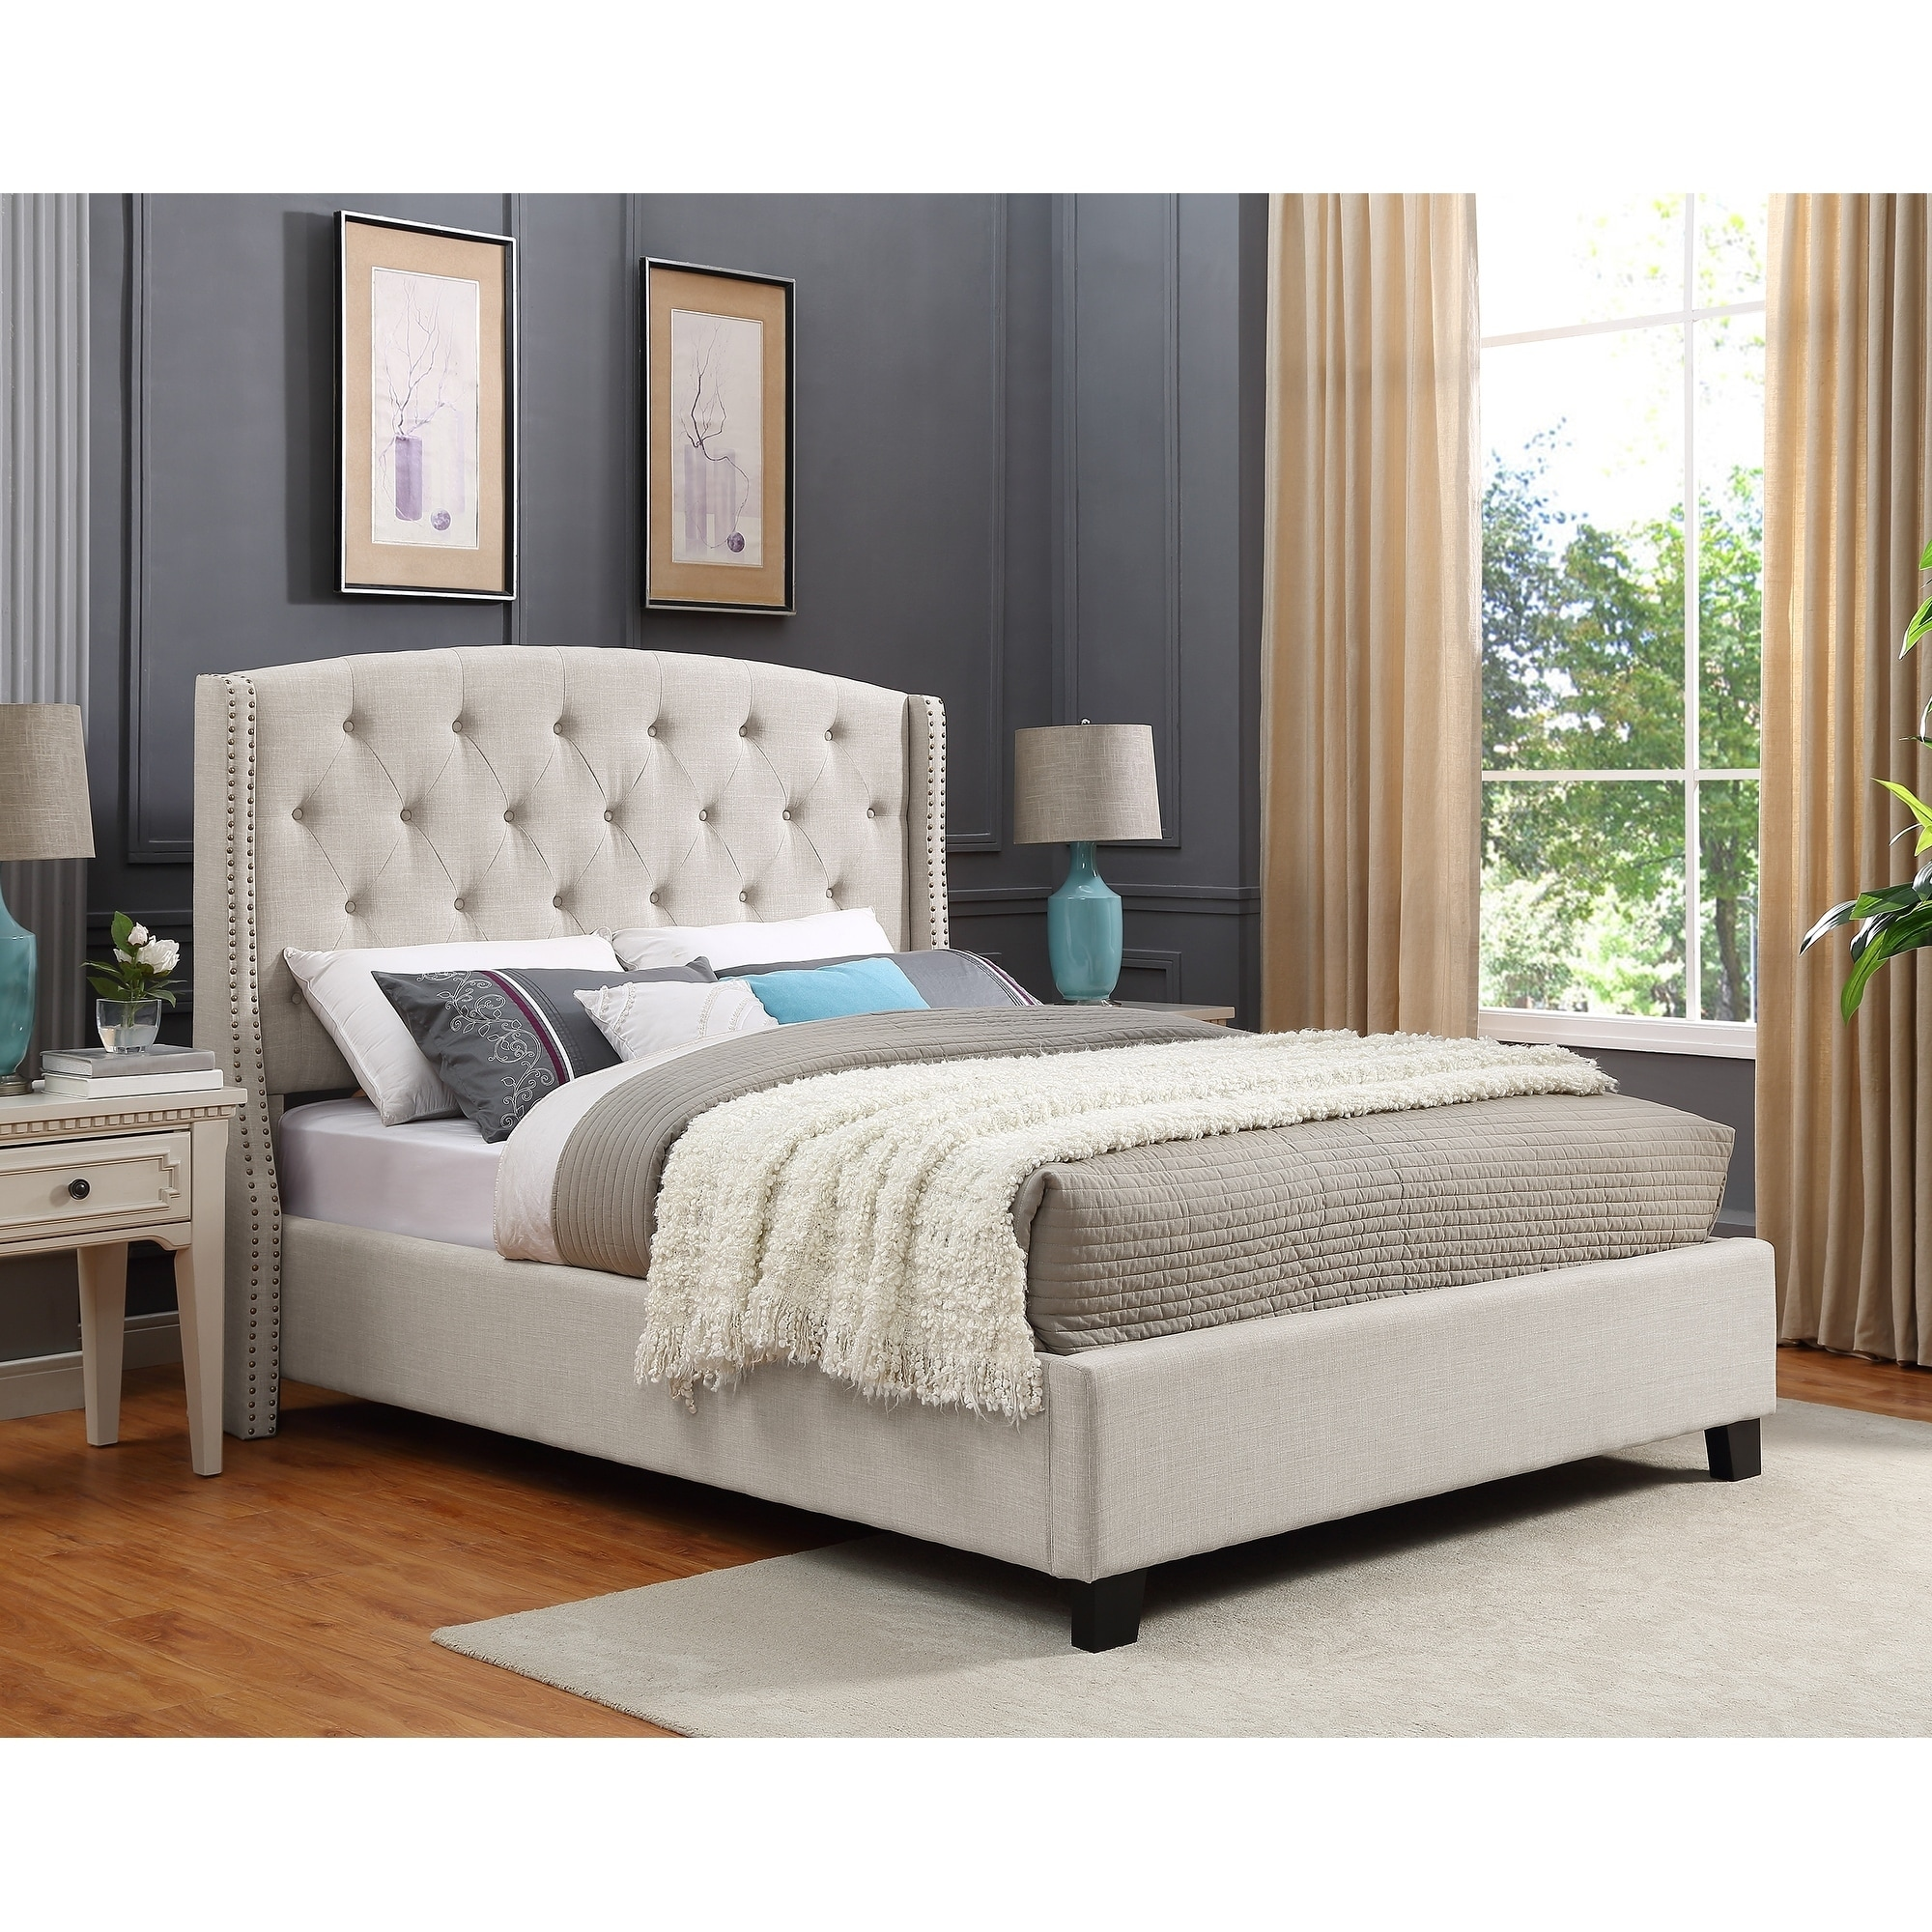 nantarre fabric tufted wingback upholstered bed with nailhead trim tan